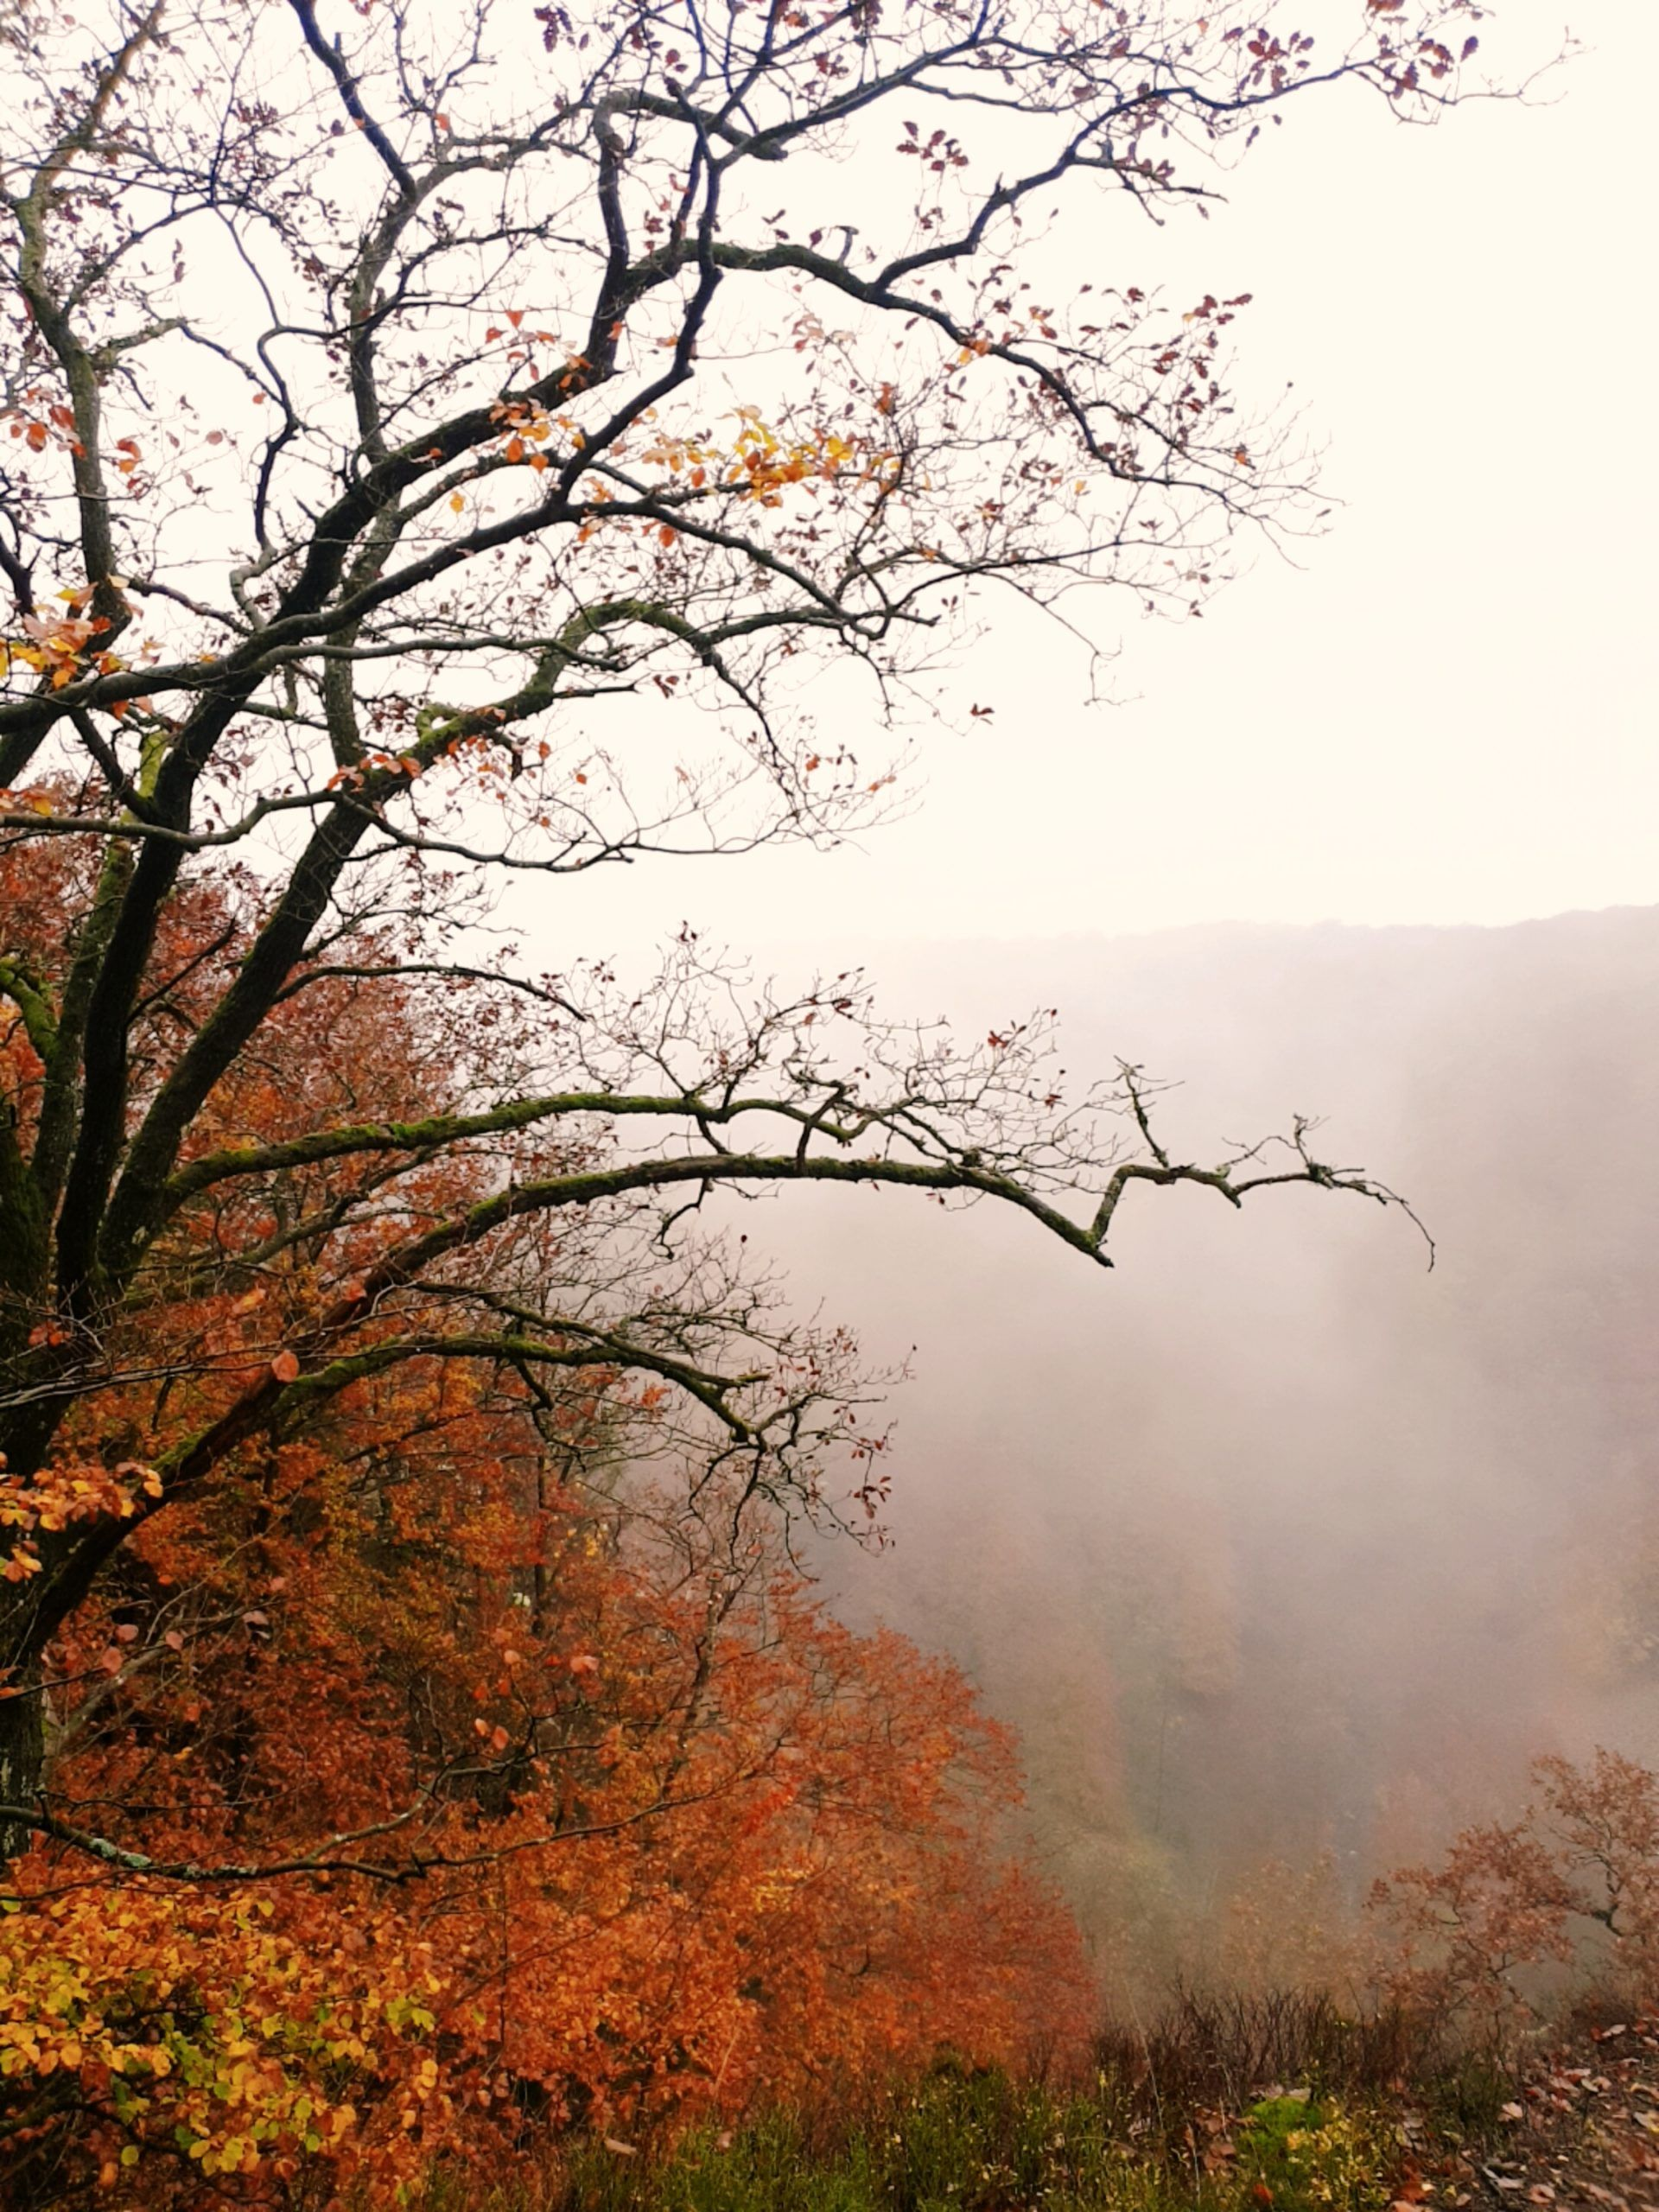 Trees covered with orange and brown leaves overlooking a misty valley.